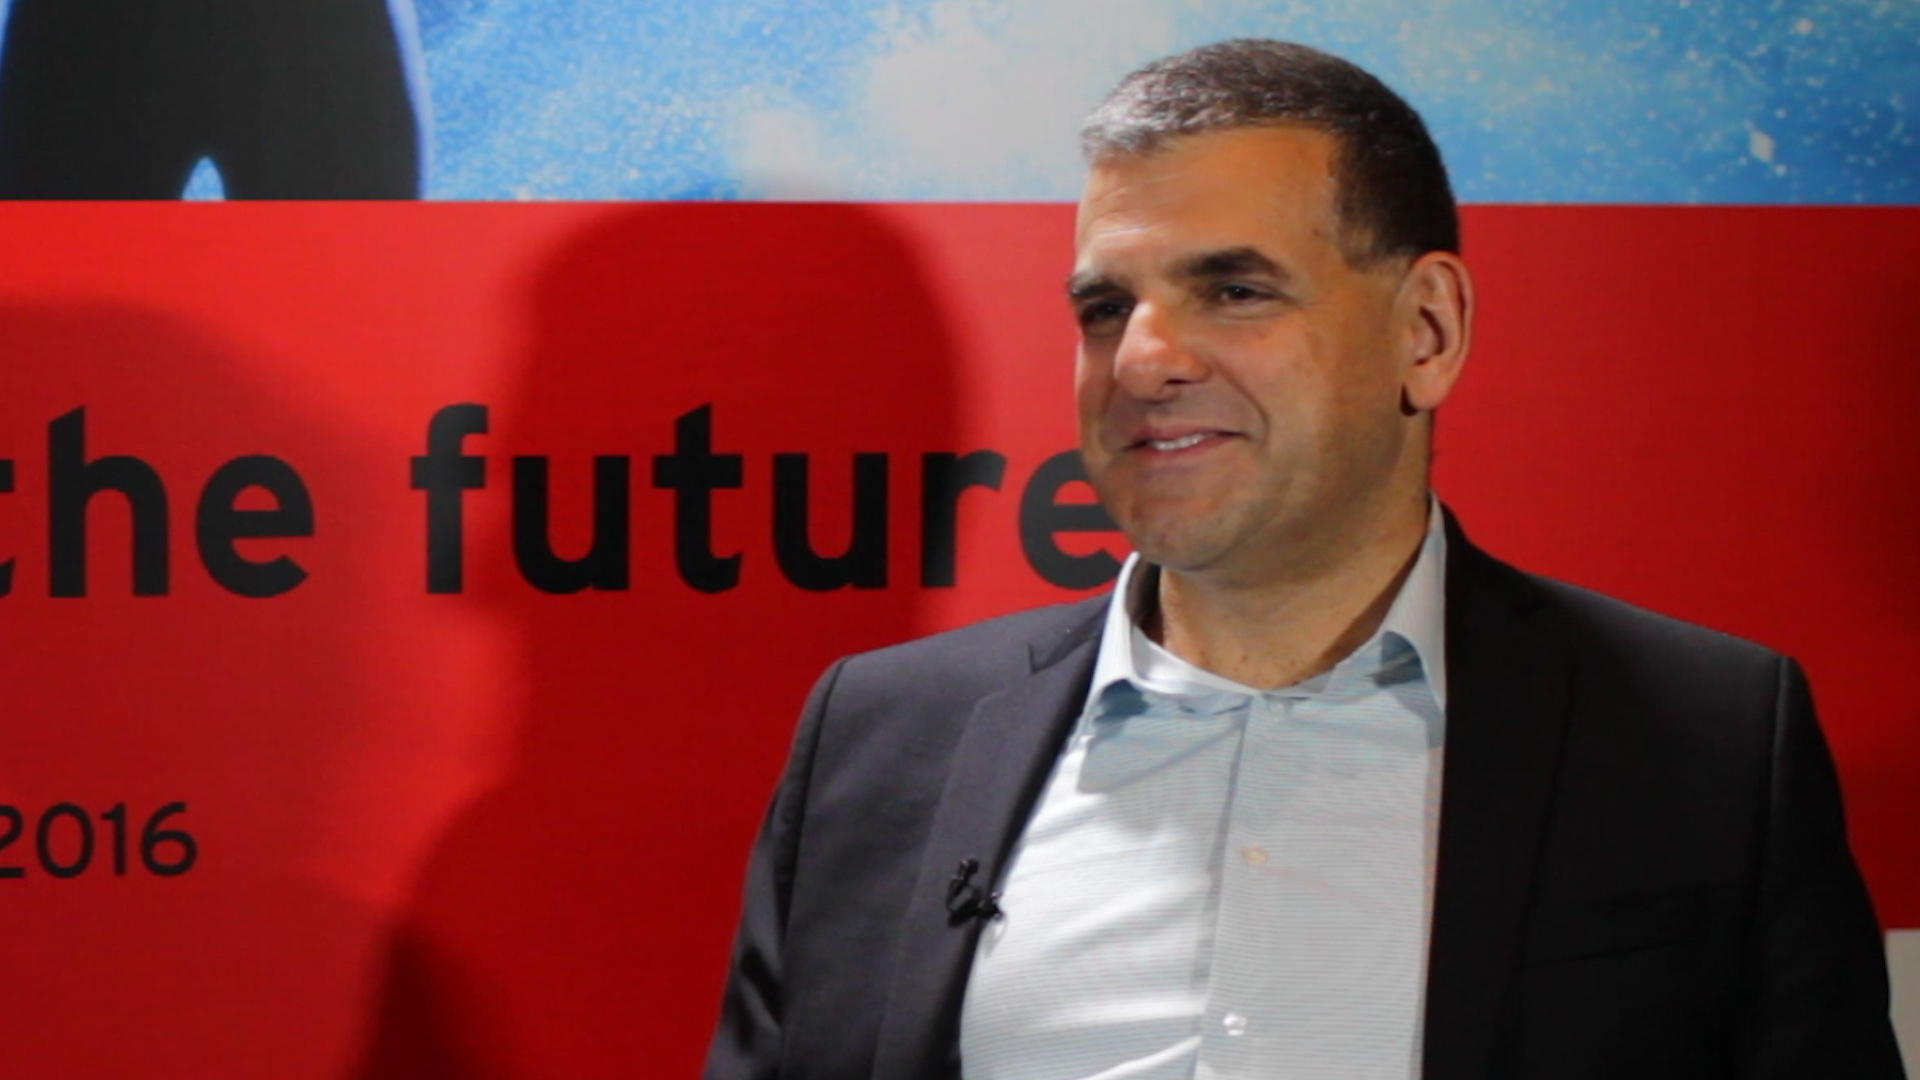 drupa 2016: There's something magical